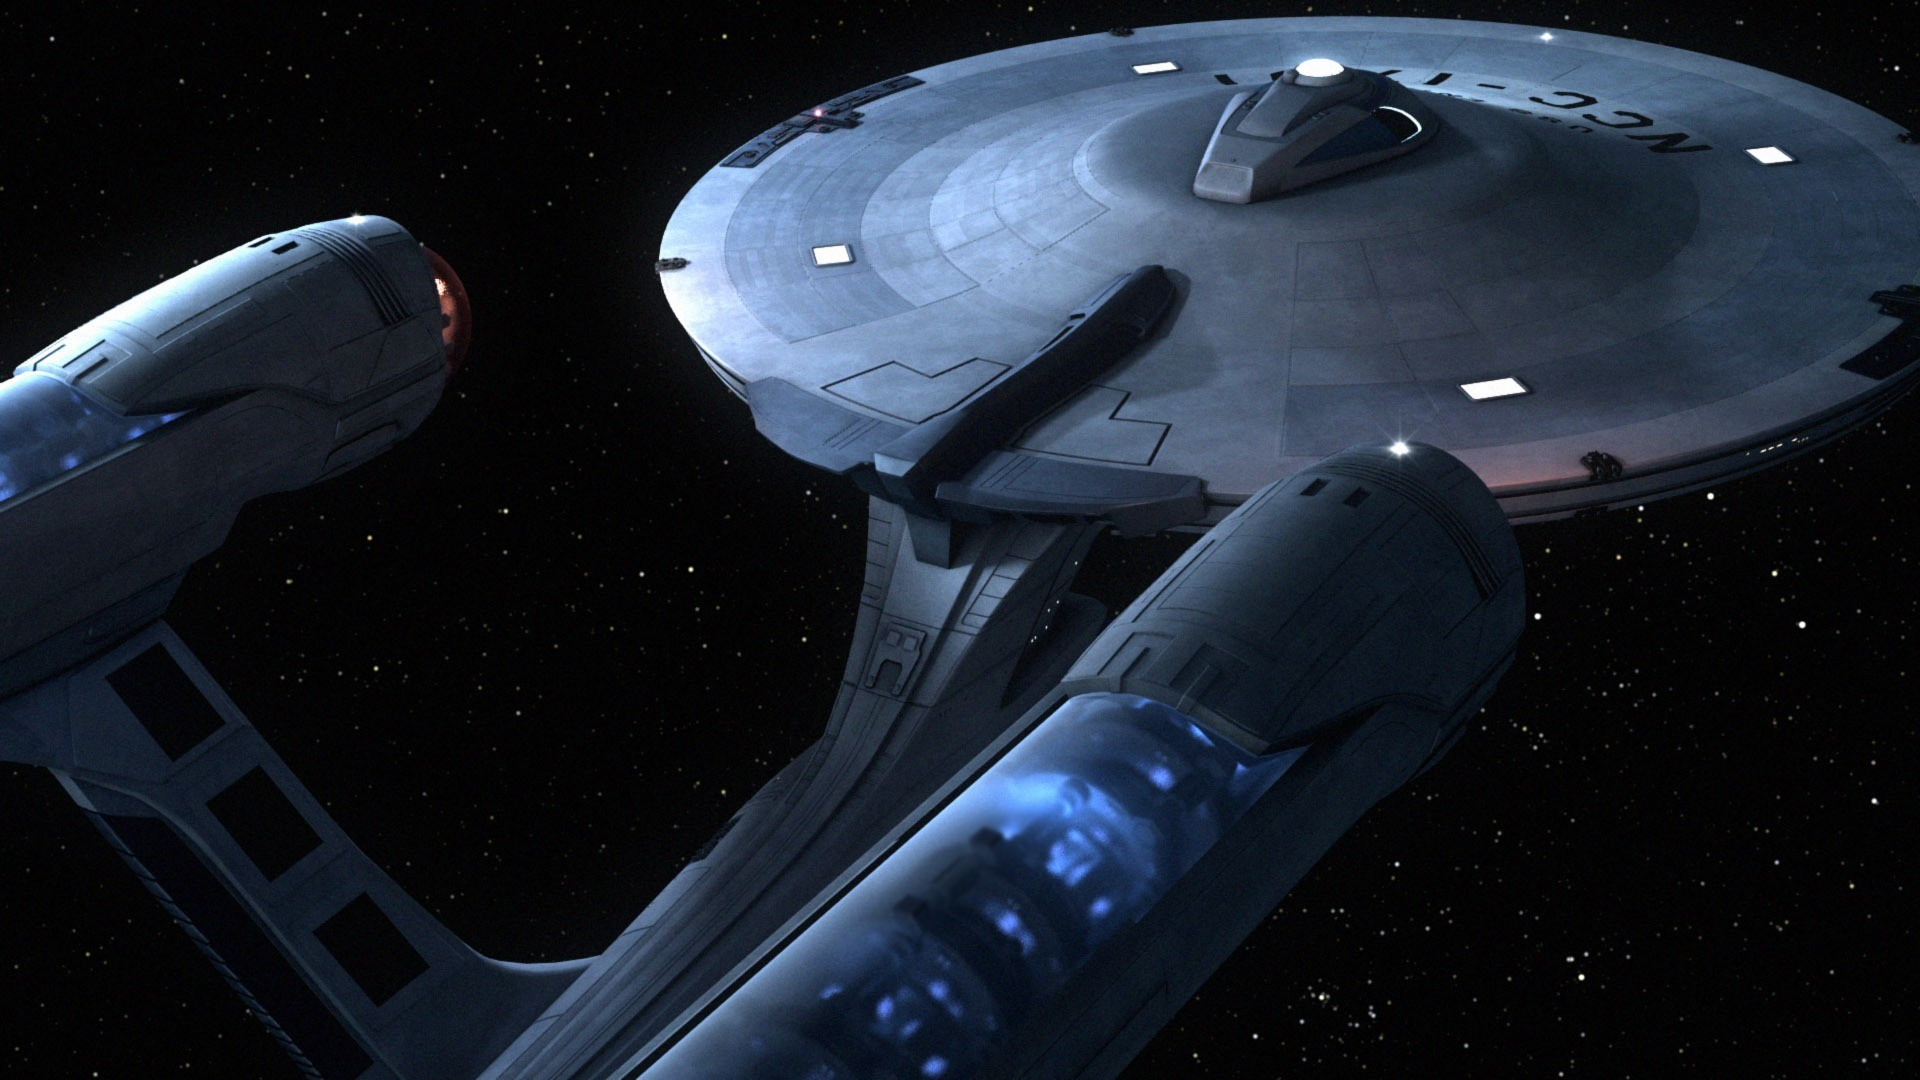 1920x1080 Starship Enterprise - Star Trek HD Wallpaper